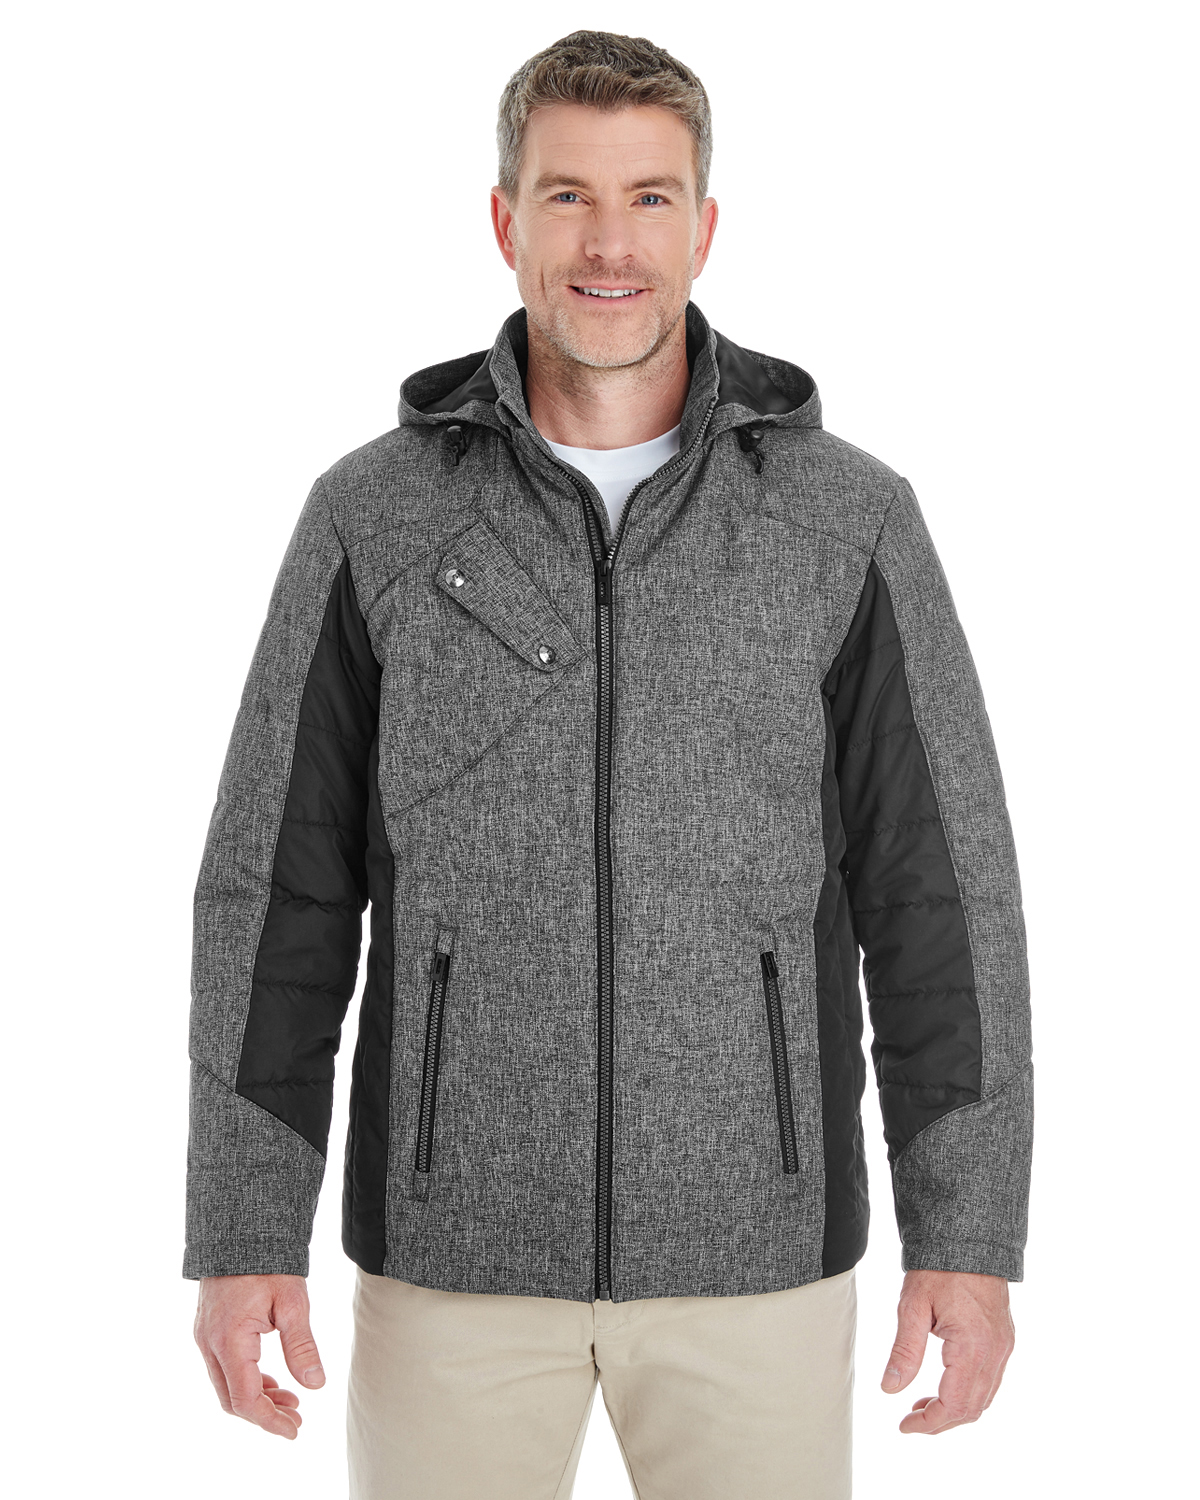 Devon & Jones DG710 - Men's Midtown Insulated Fabric-Block Jacket with Crosshatch Melange